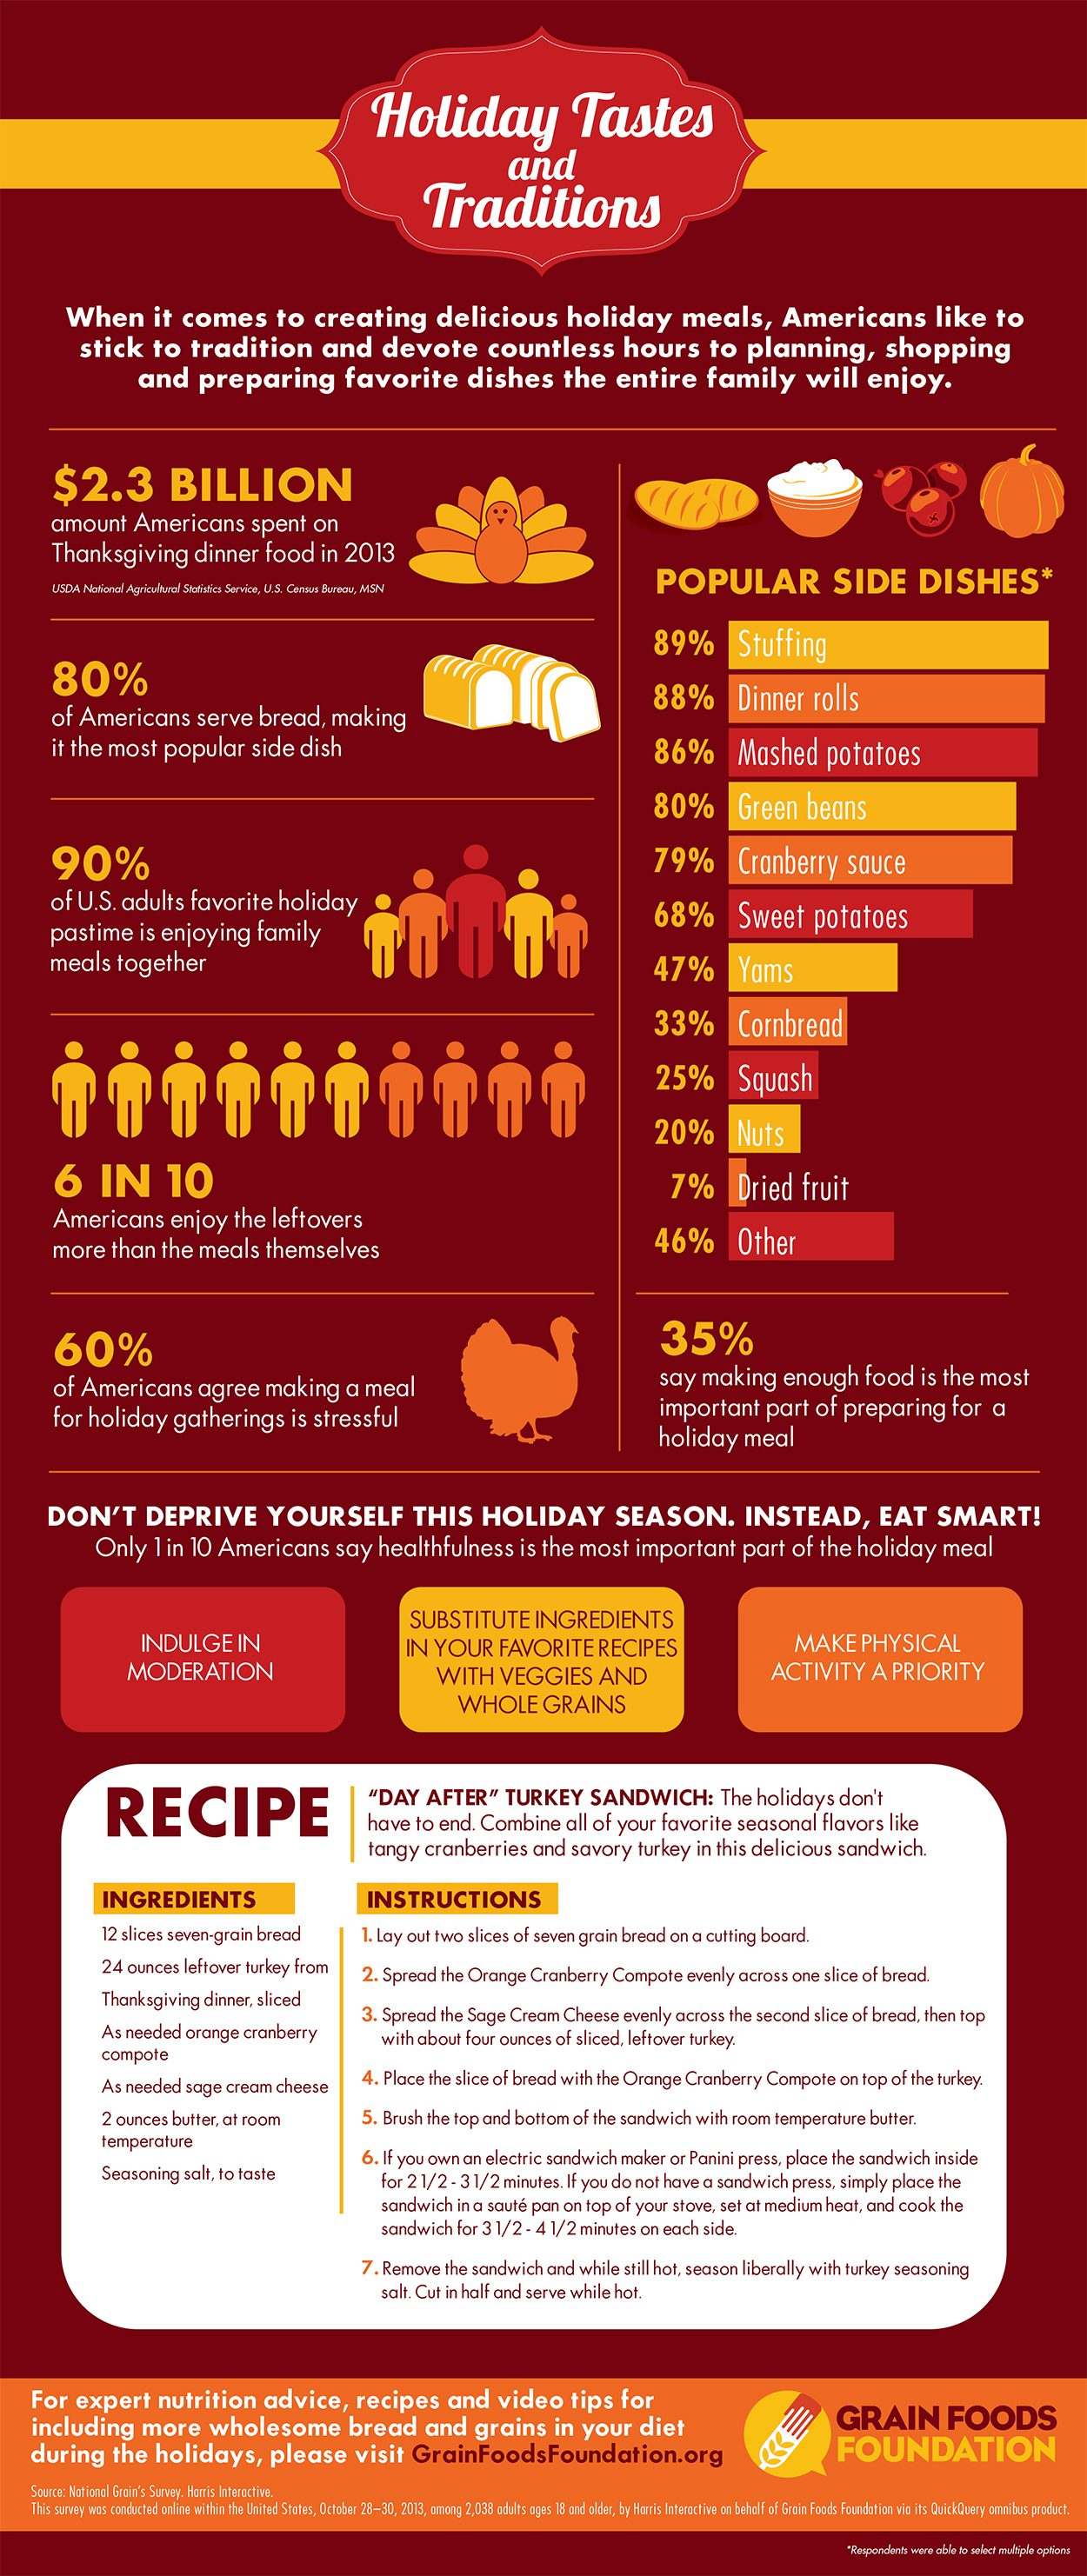 Grain Foods Fondation Infographic Design by DreamBig Creative Minneapolis, MN